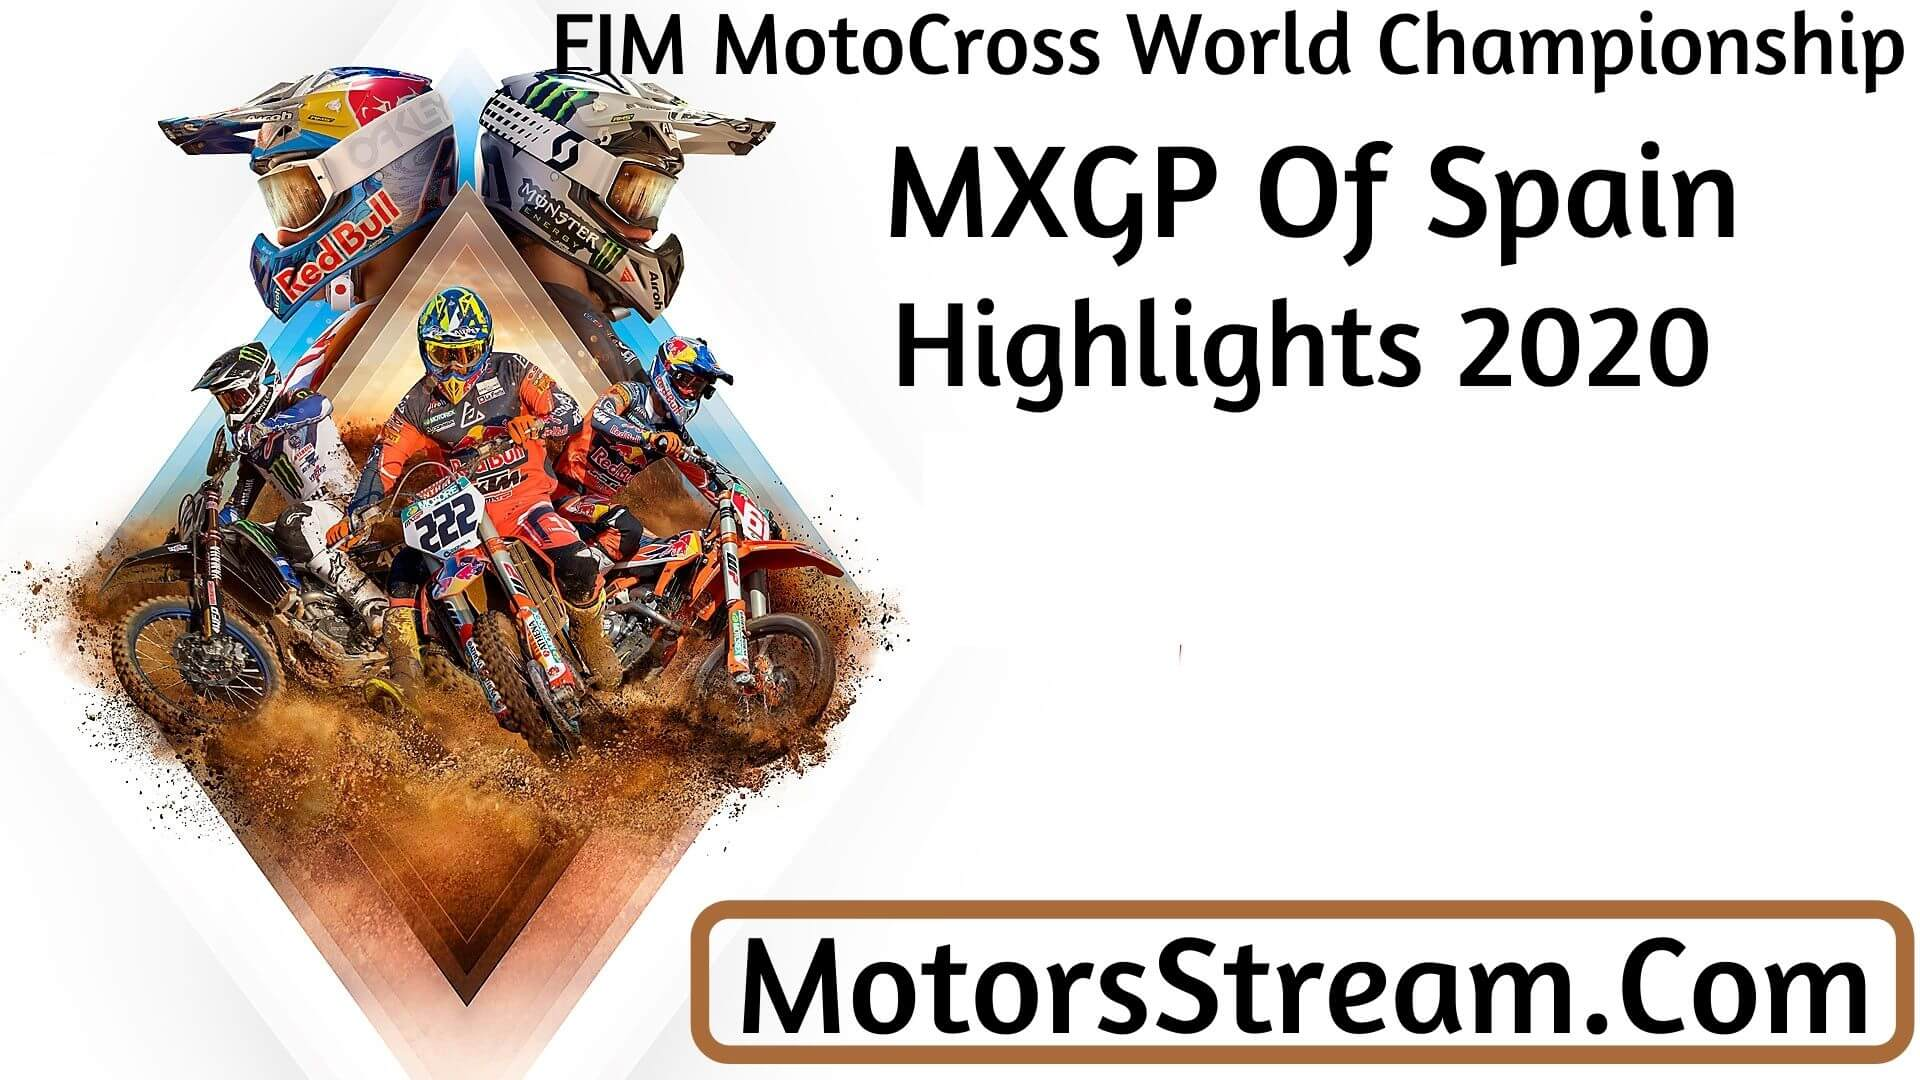 MXGP Of Spain Highlights 2020